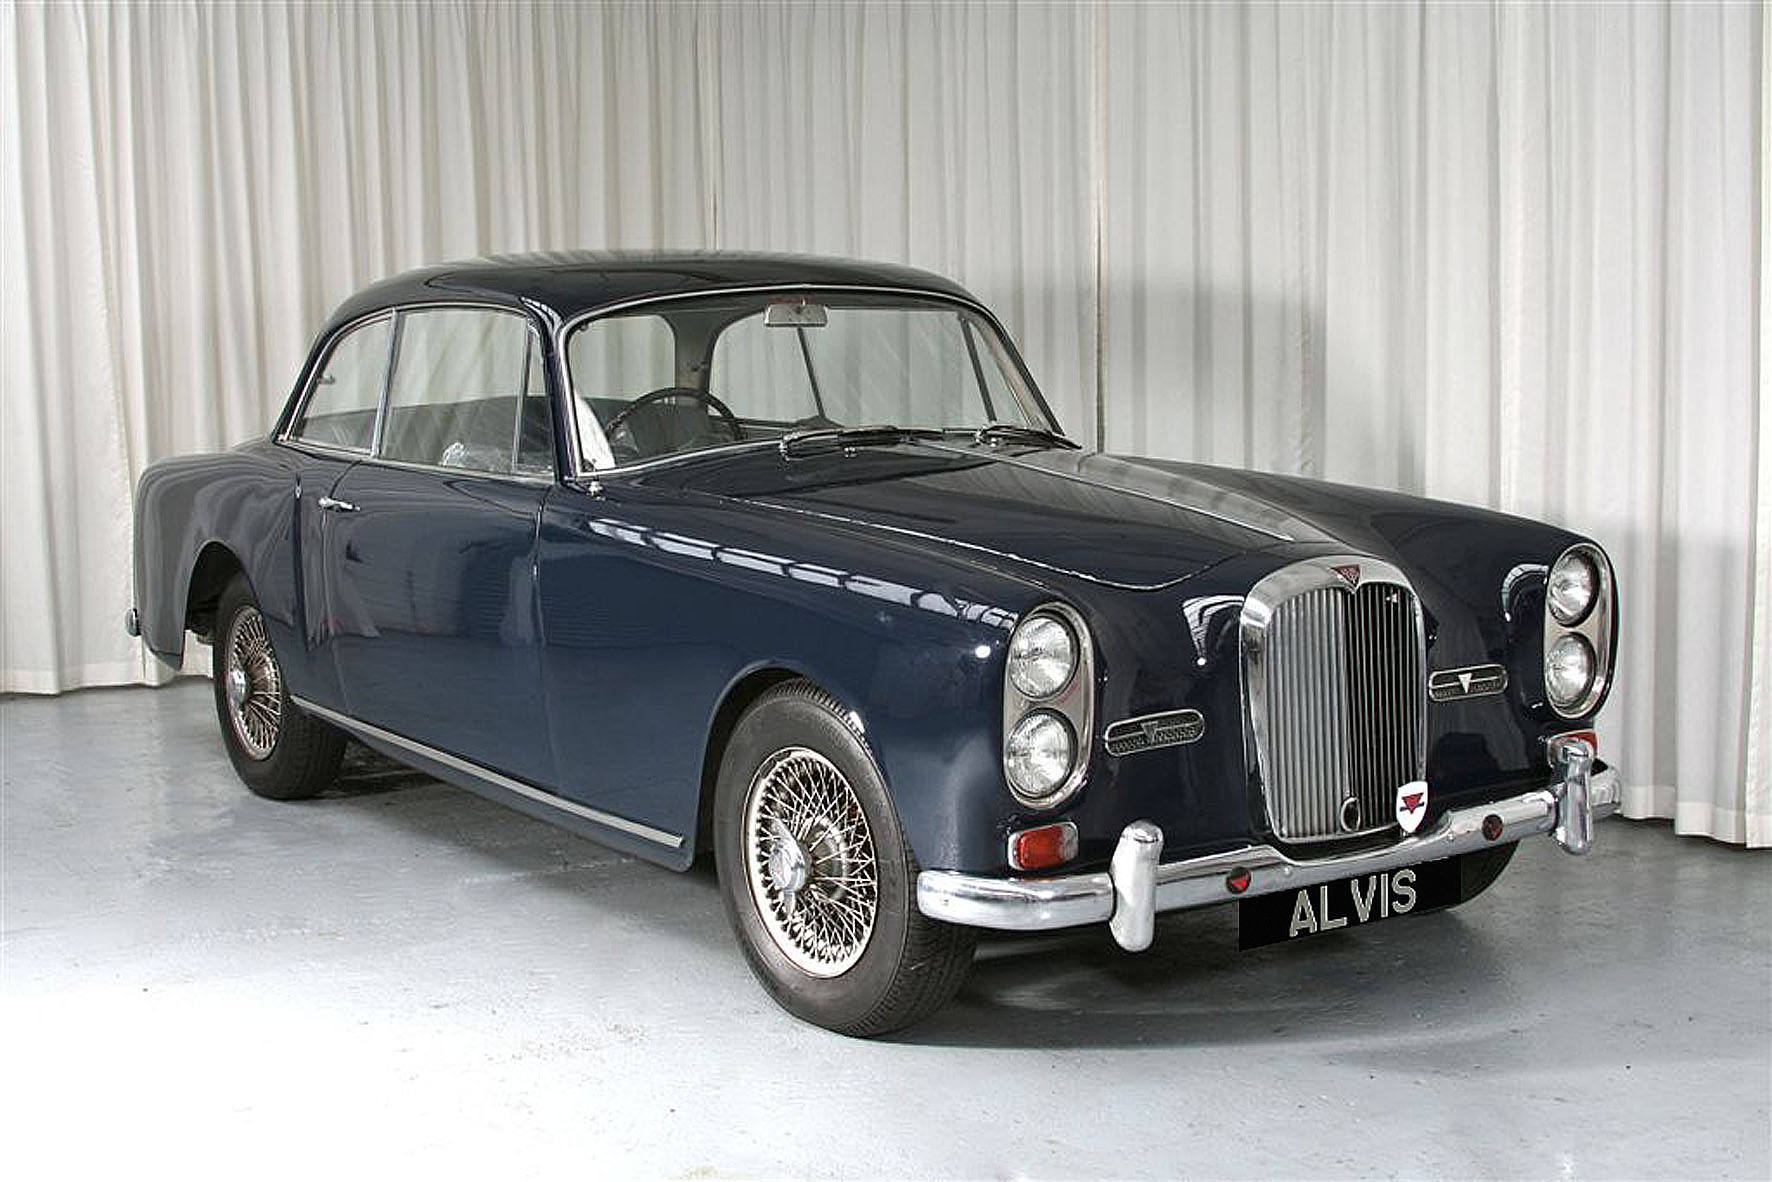 TE2164B copy - Red Triangle - Alvis Parts, Restoration and Car Sales